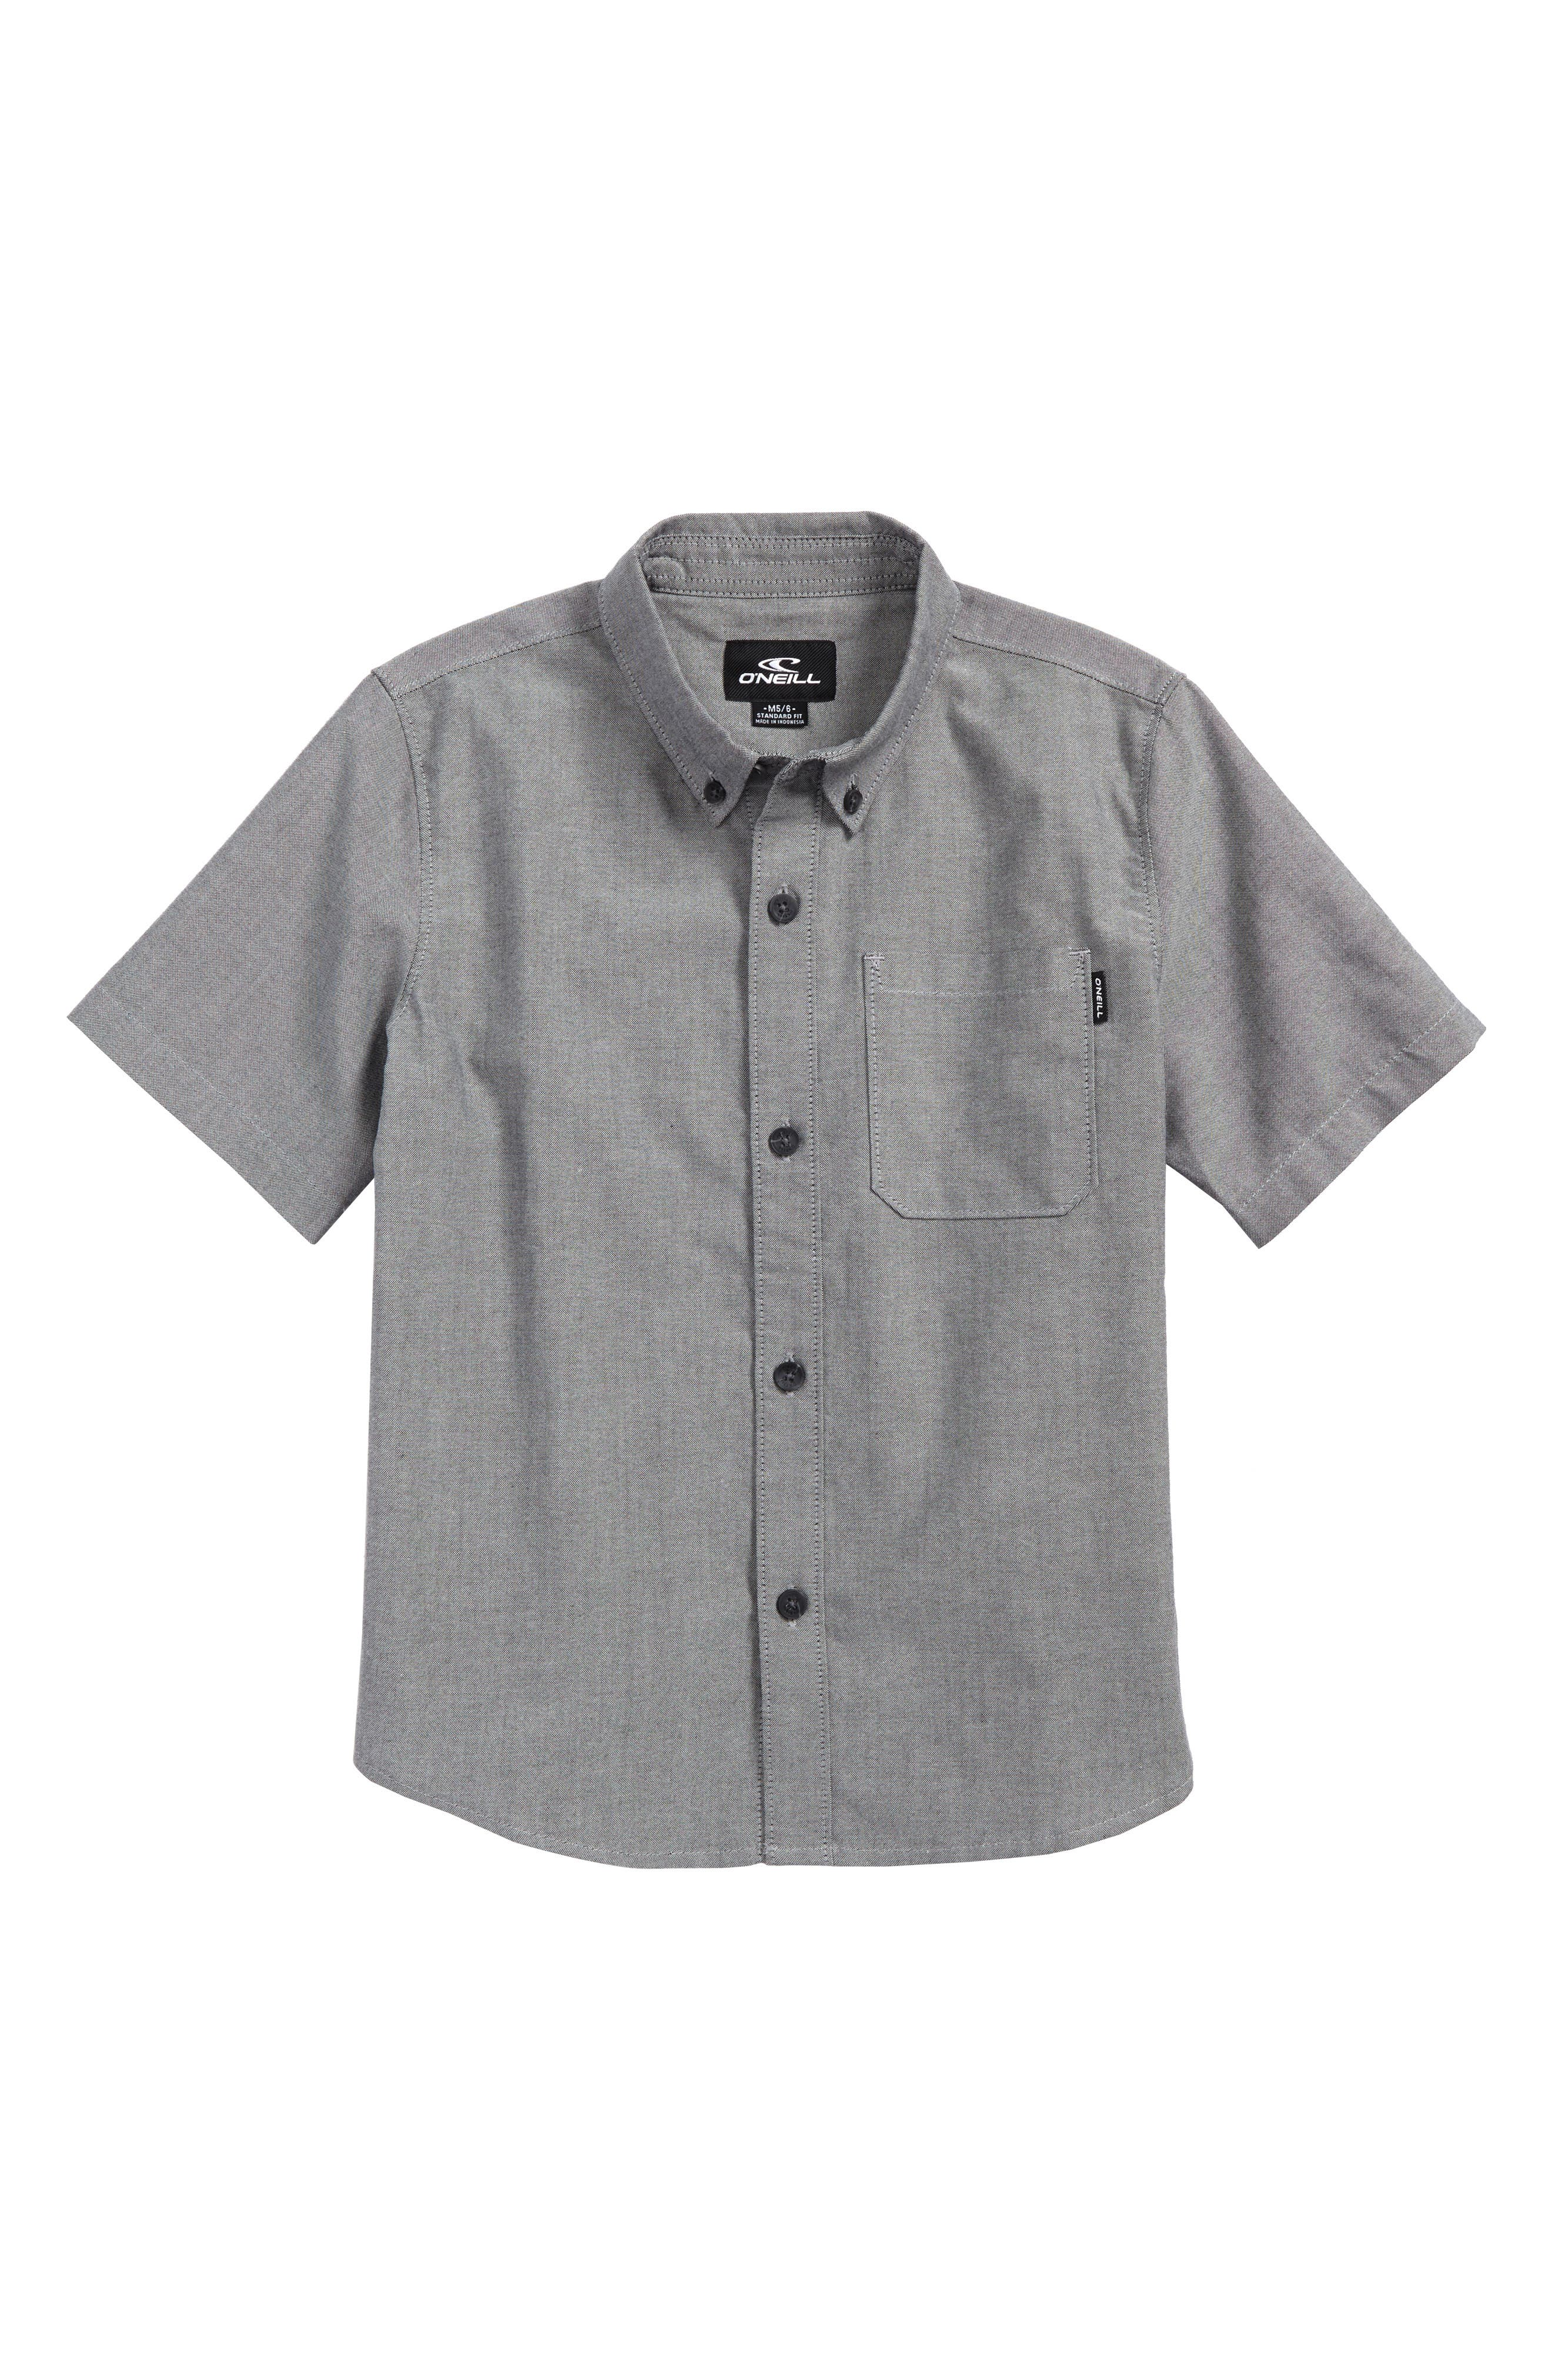 Banks Woven Shirt,                             Main thumbnail 1, color,                             001